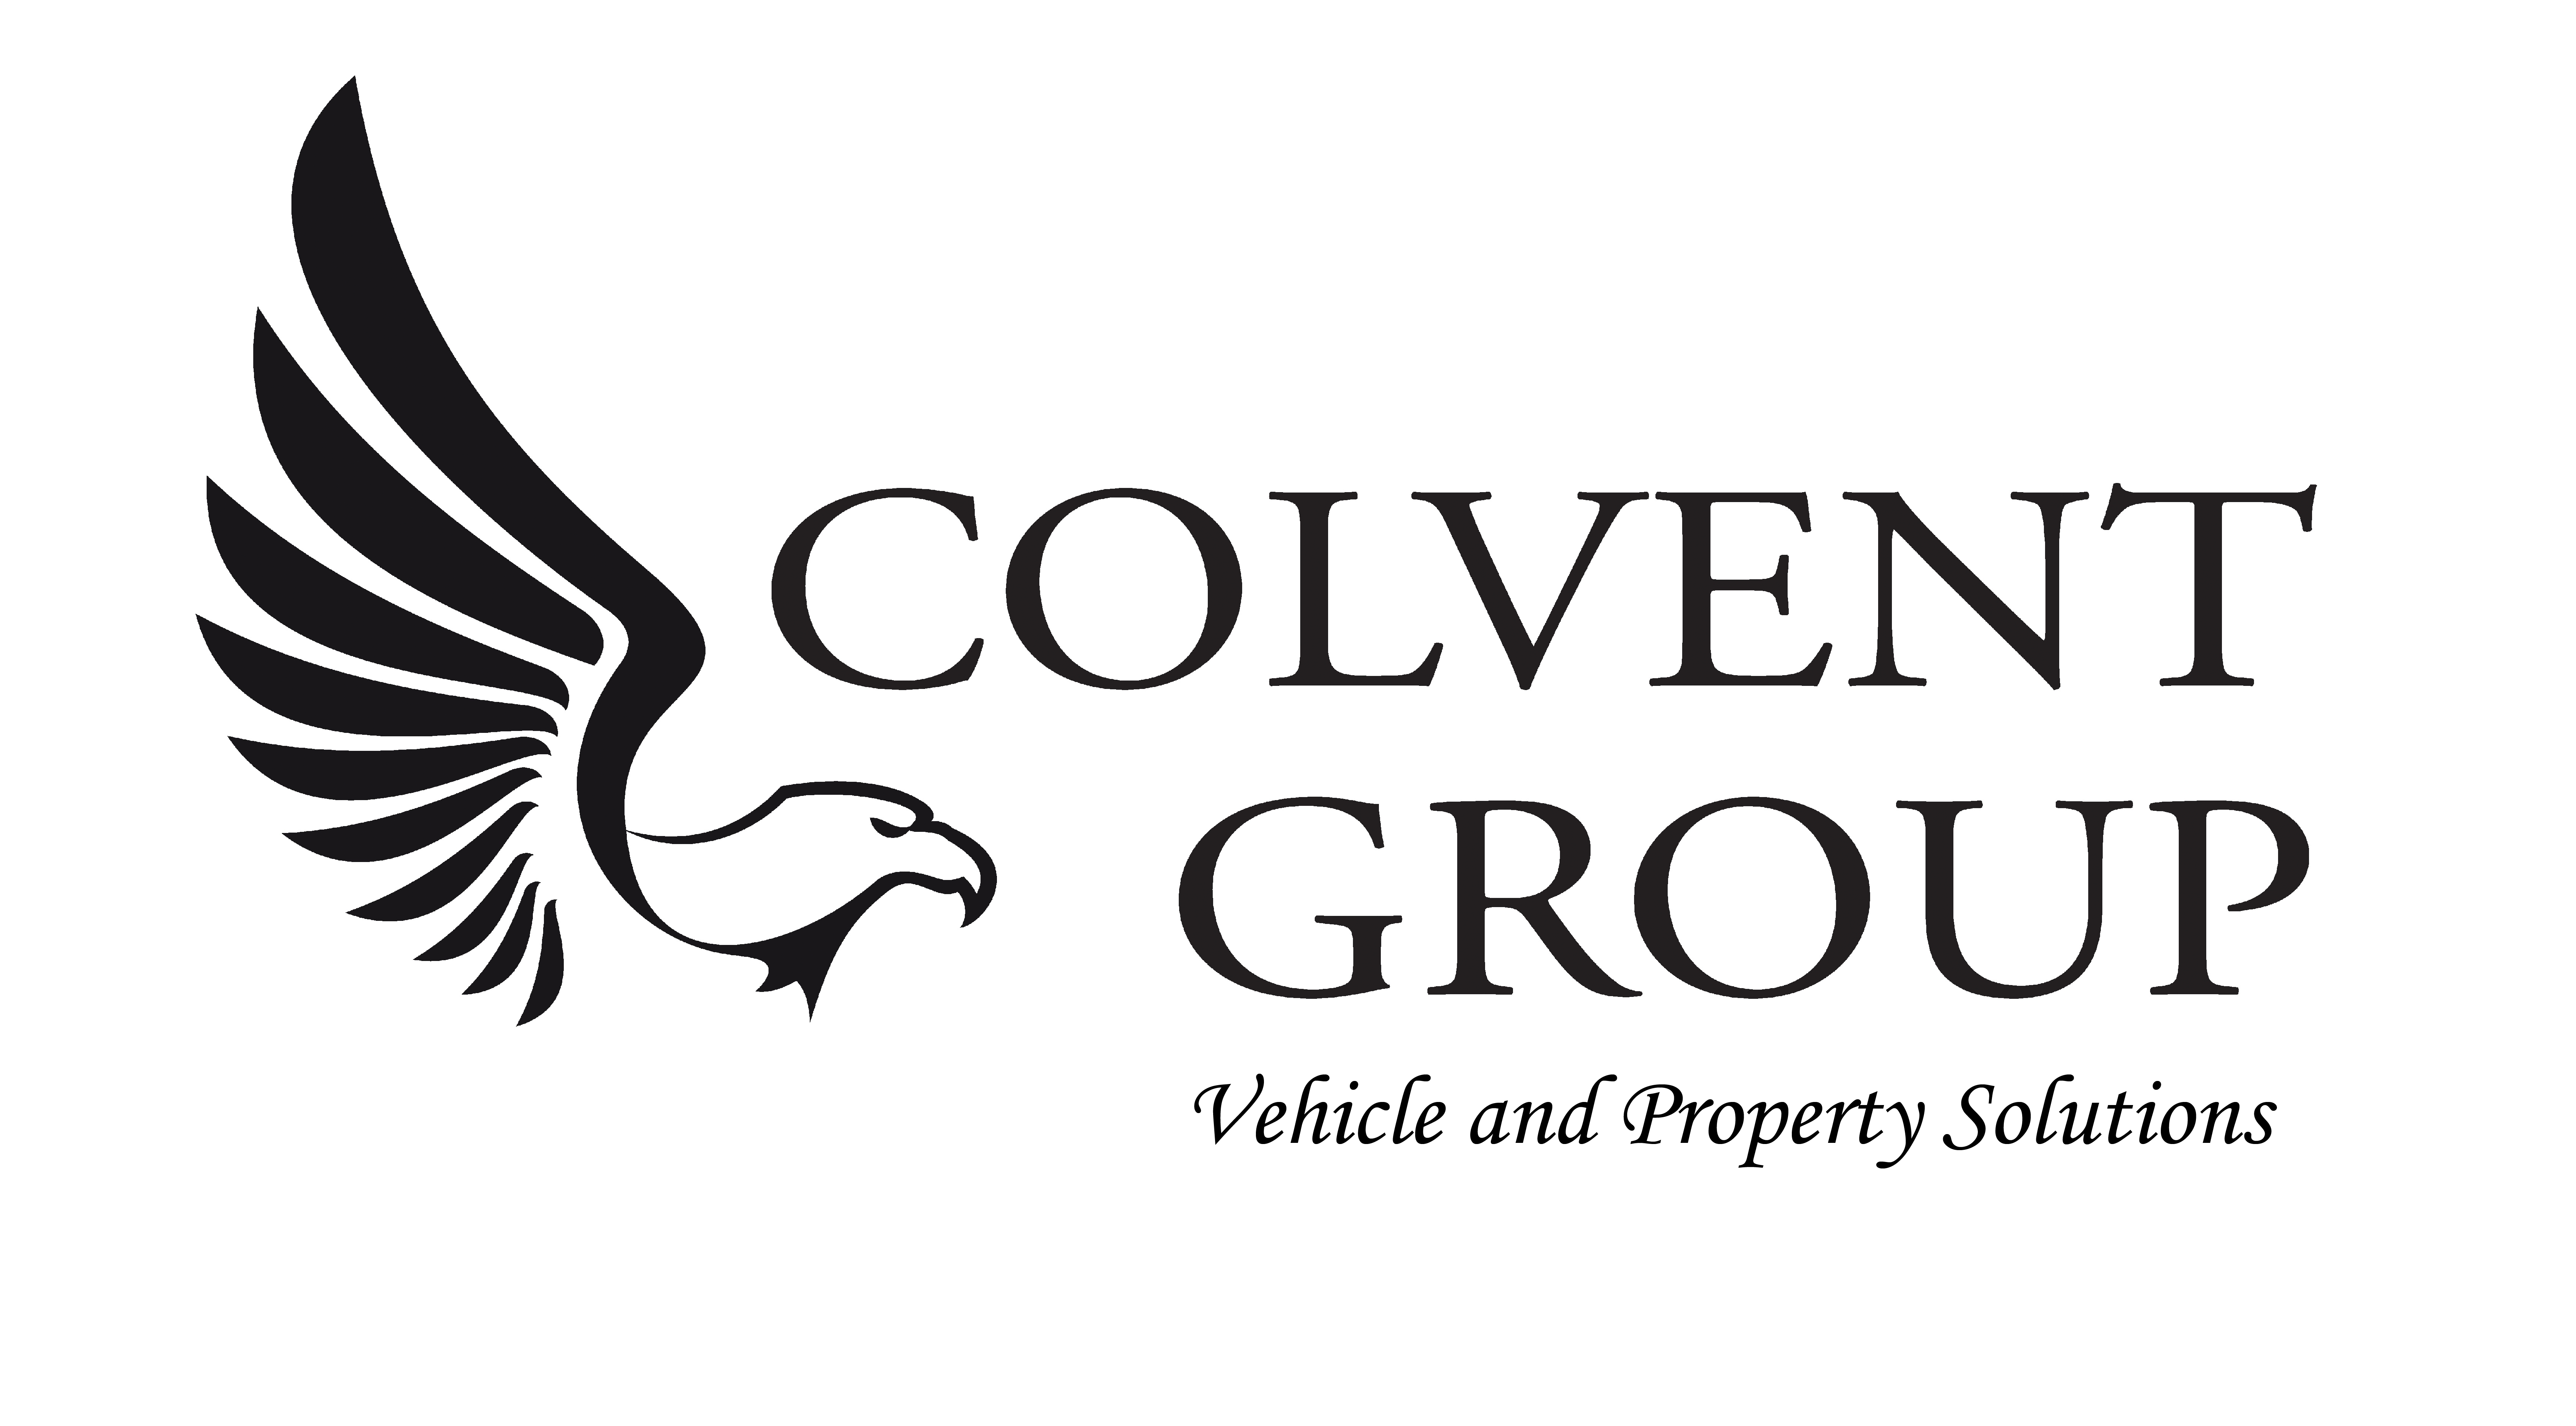 Colvent Group